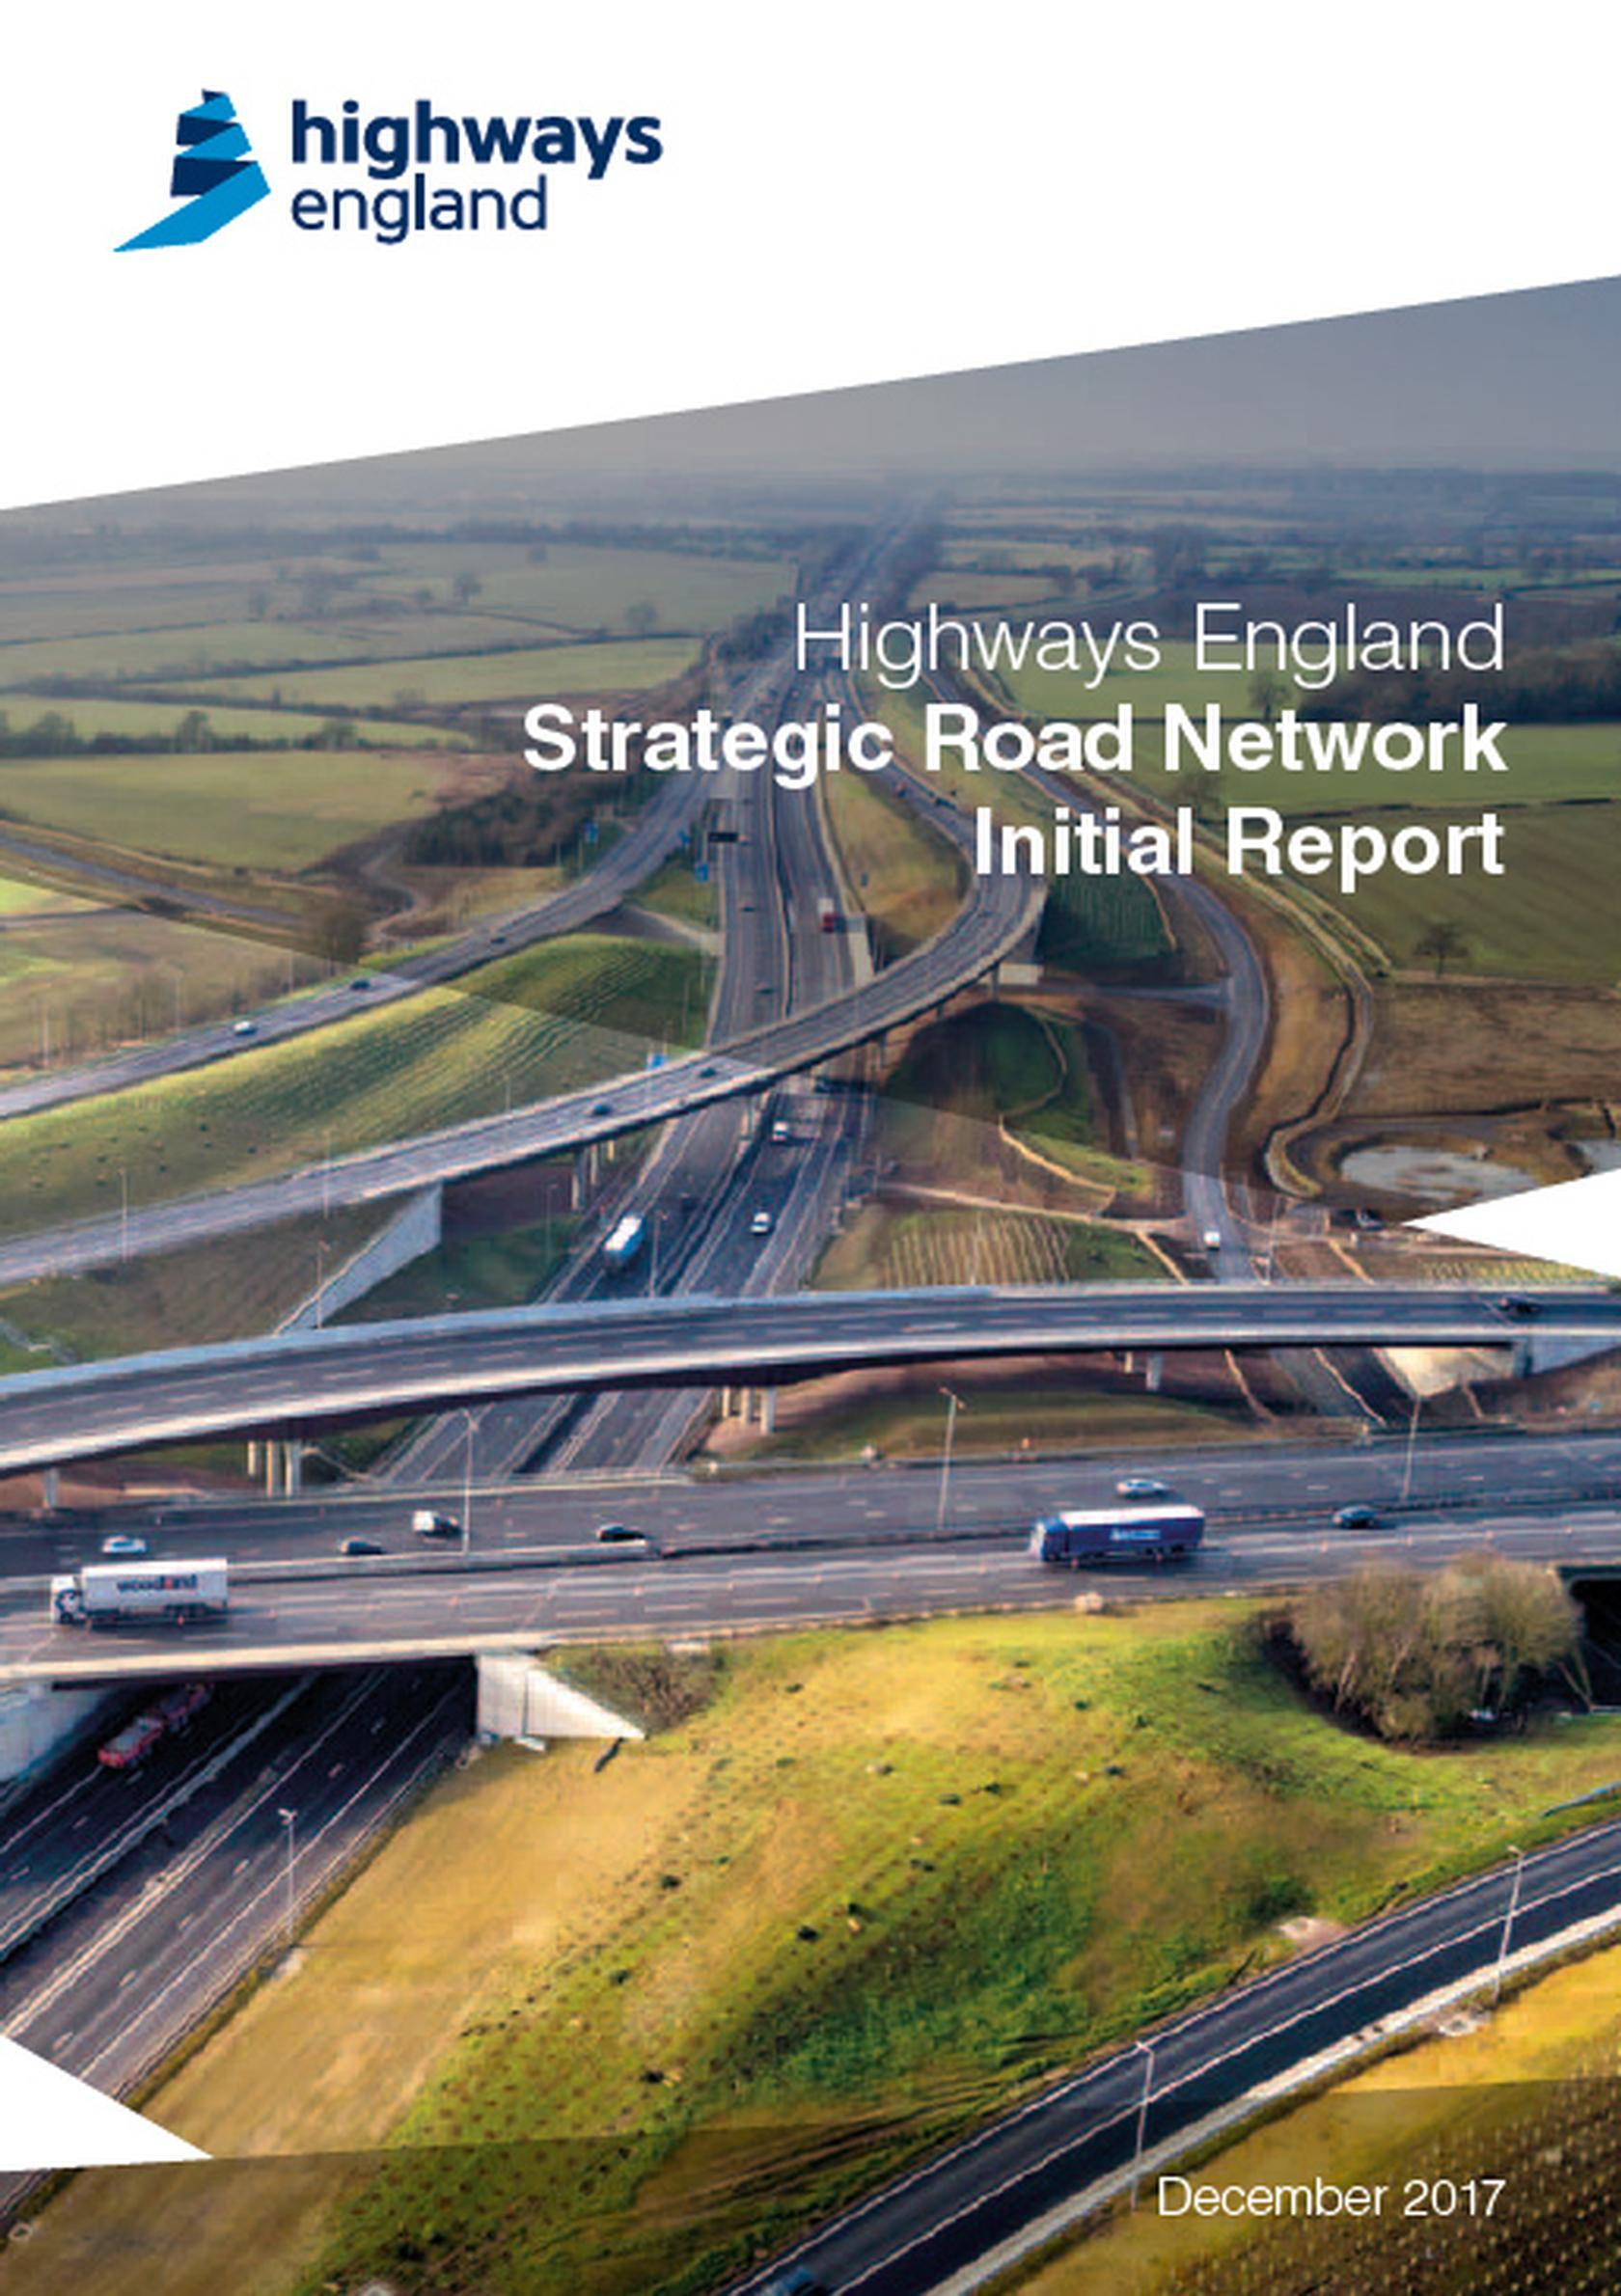 Highways England floats new orbital routes to ease the jams